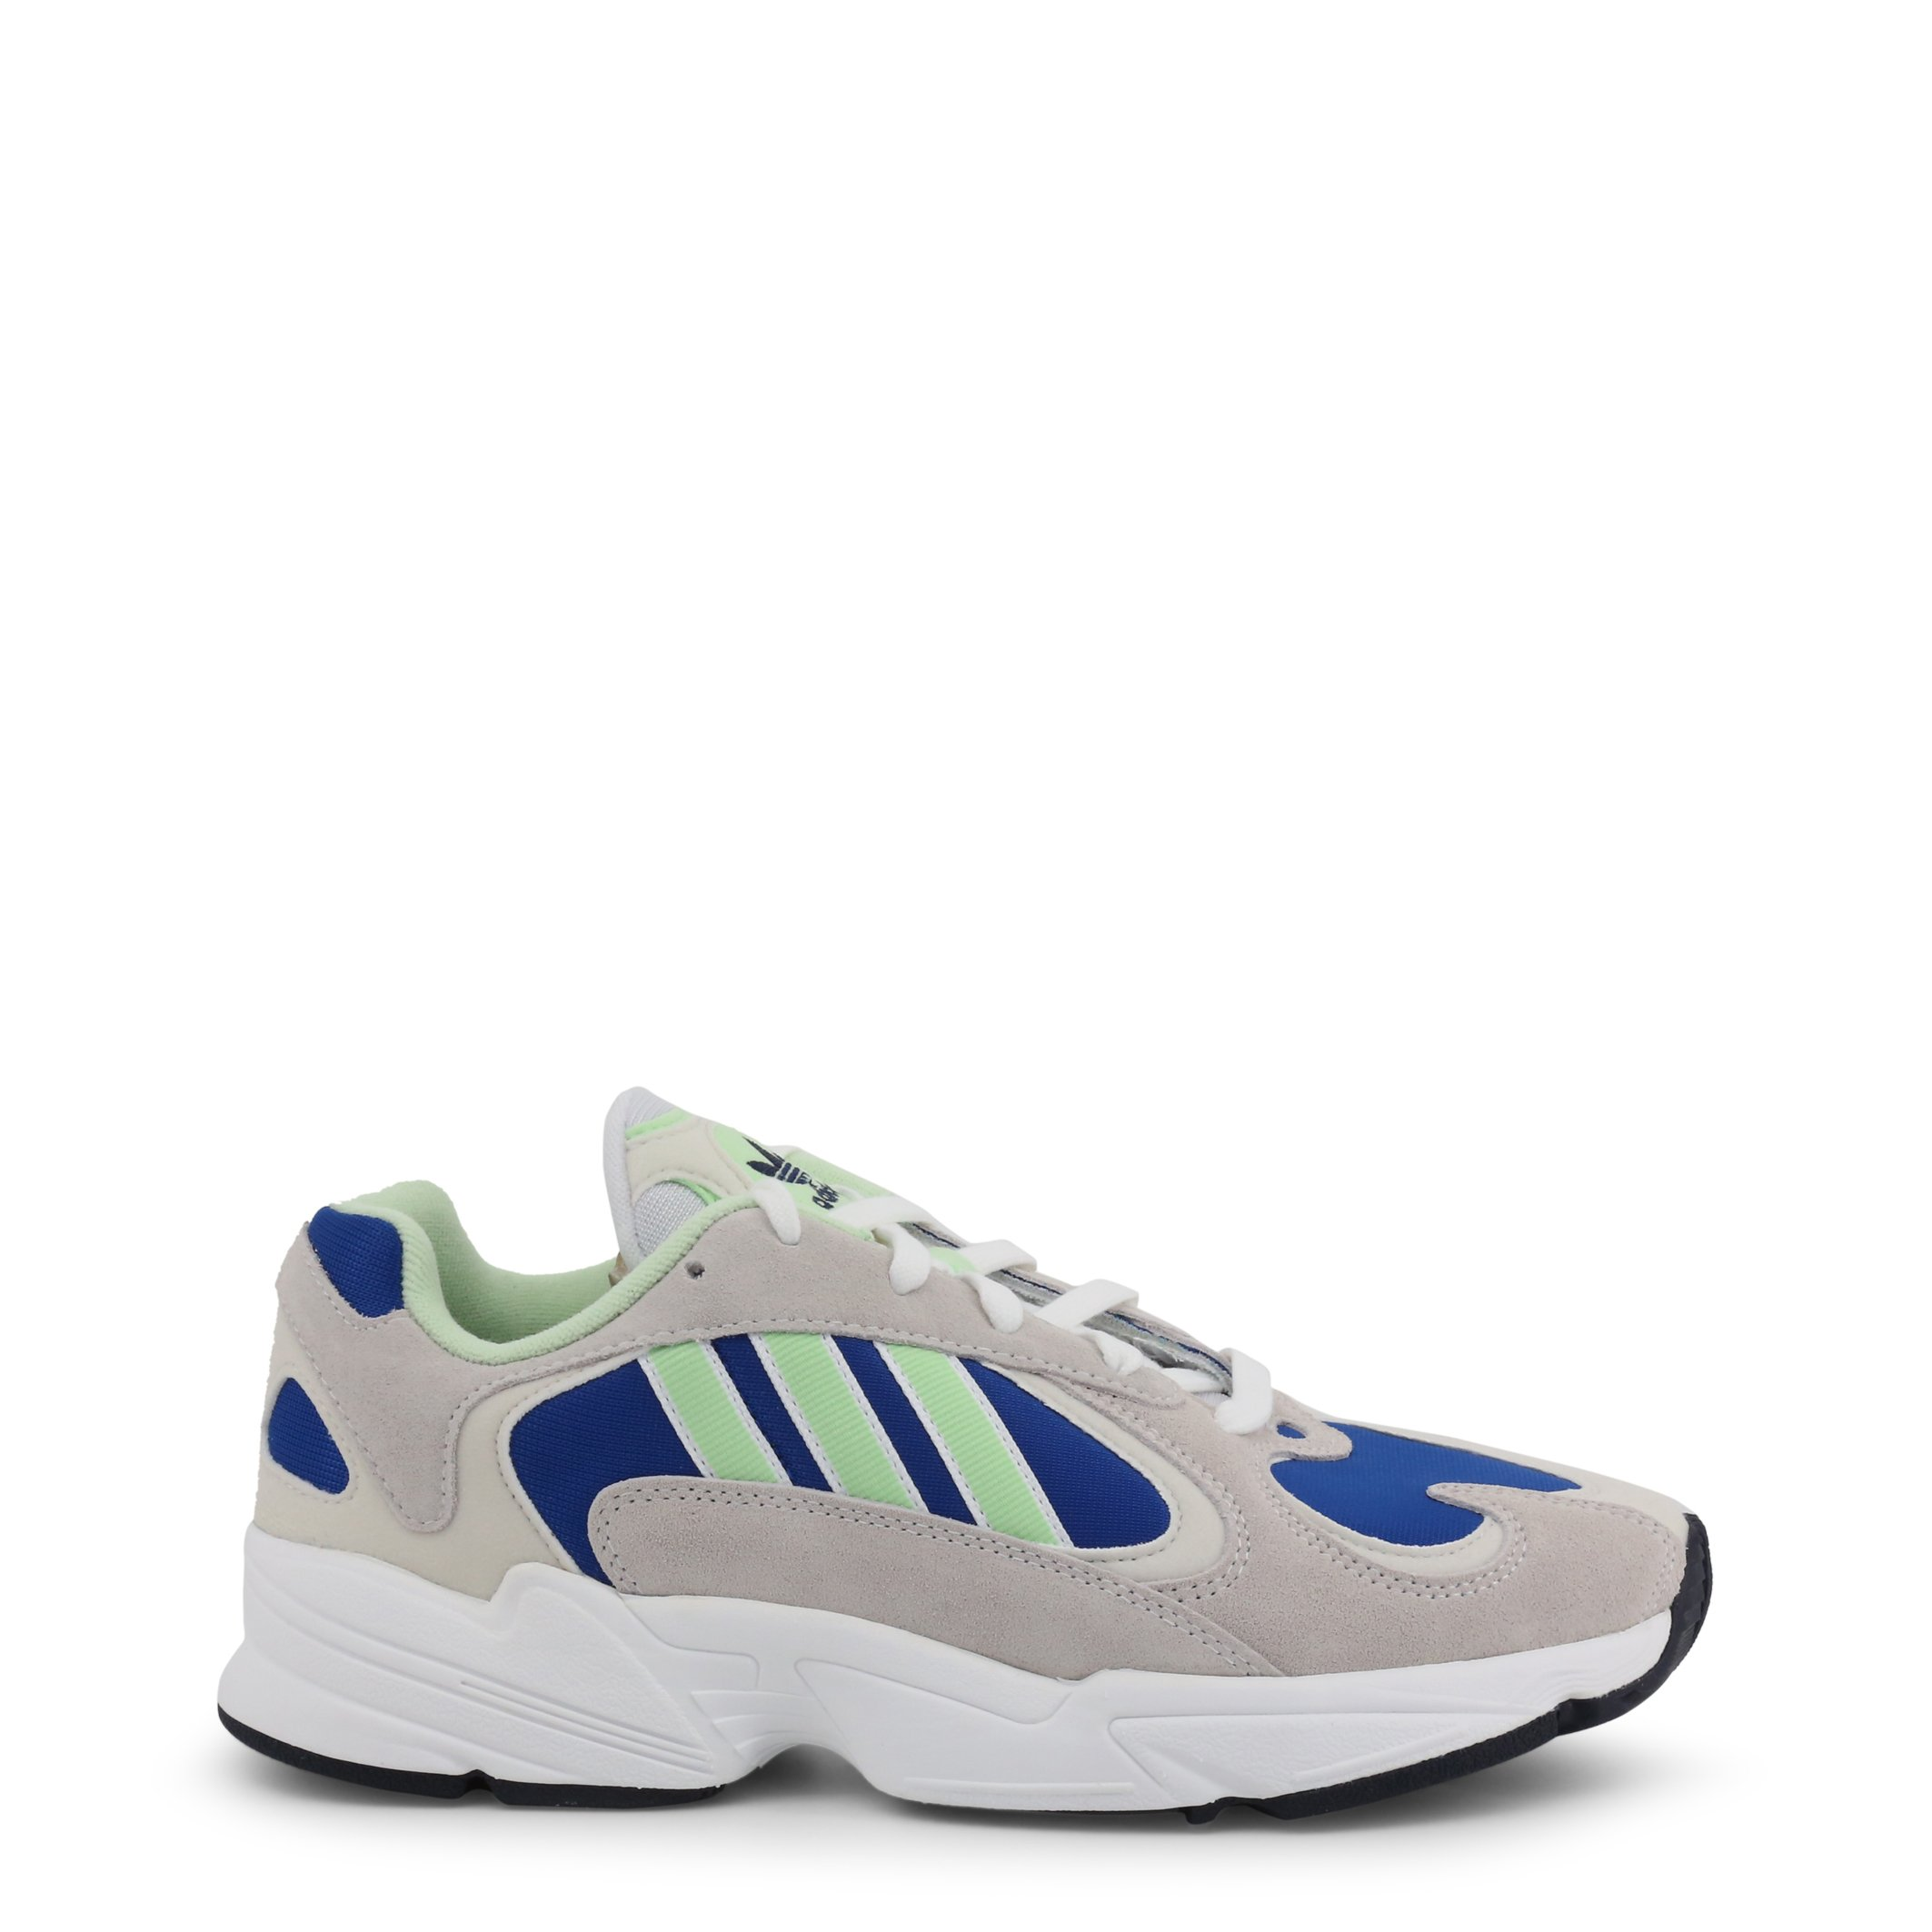 Adidas Unisex Trainers Various Colours BD7654 - grey-1 8.5 UK